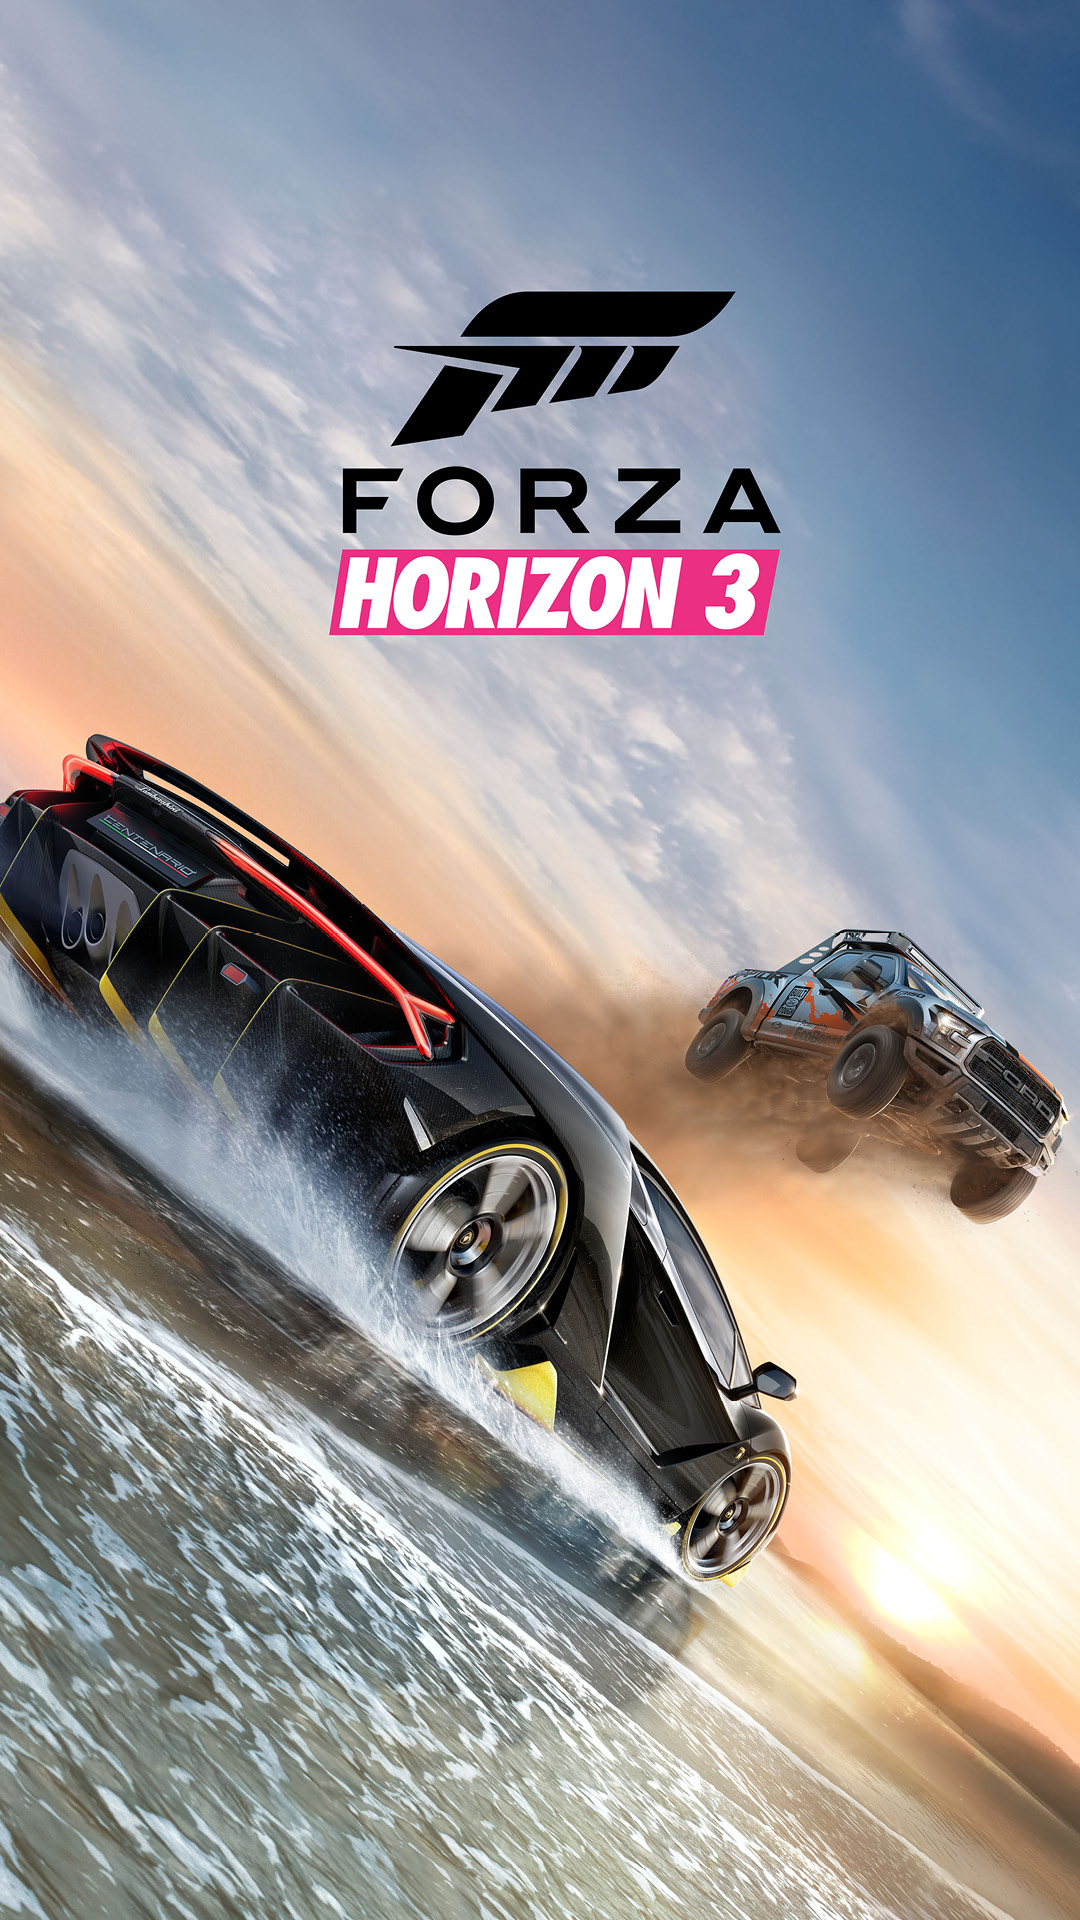 forza horizon 3 pc تحميل